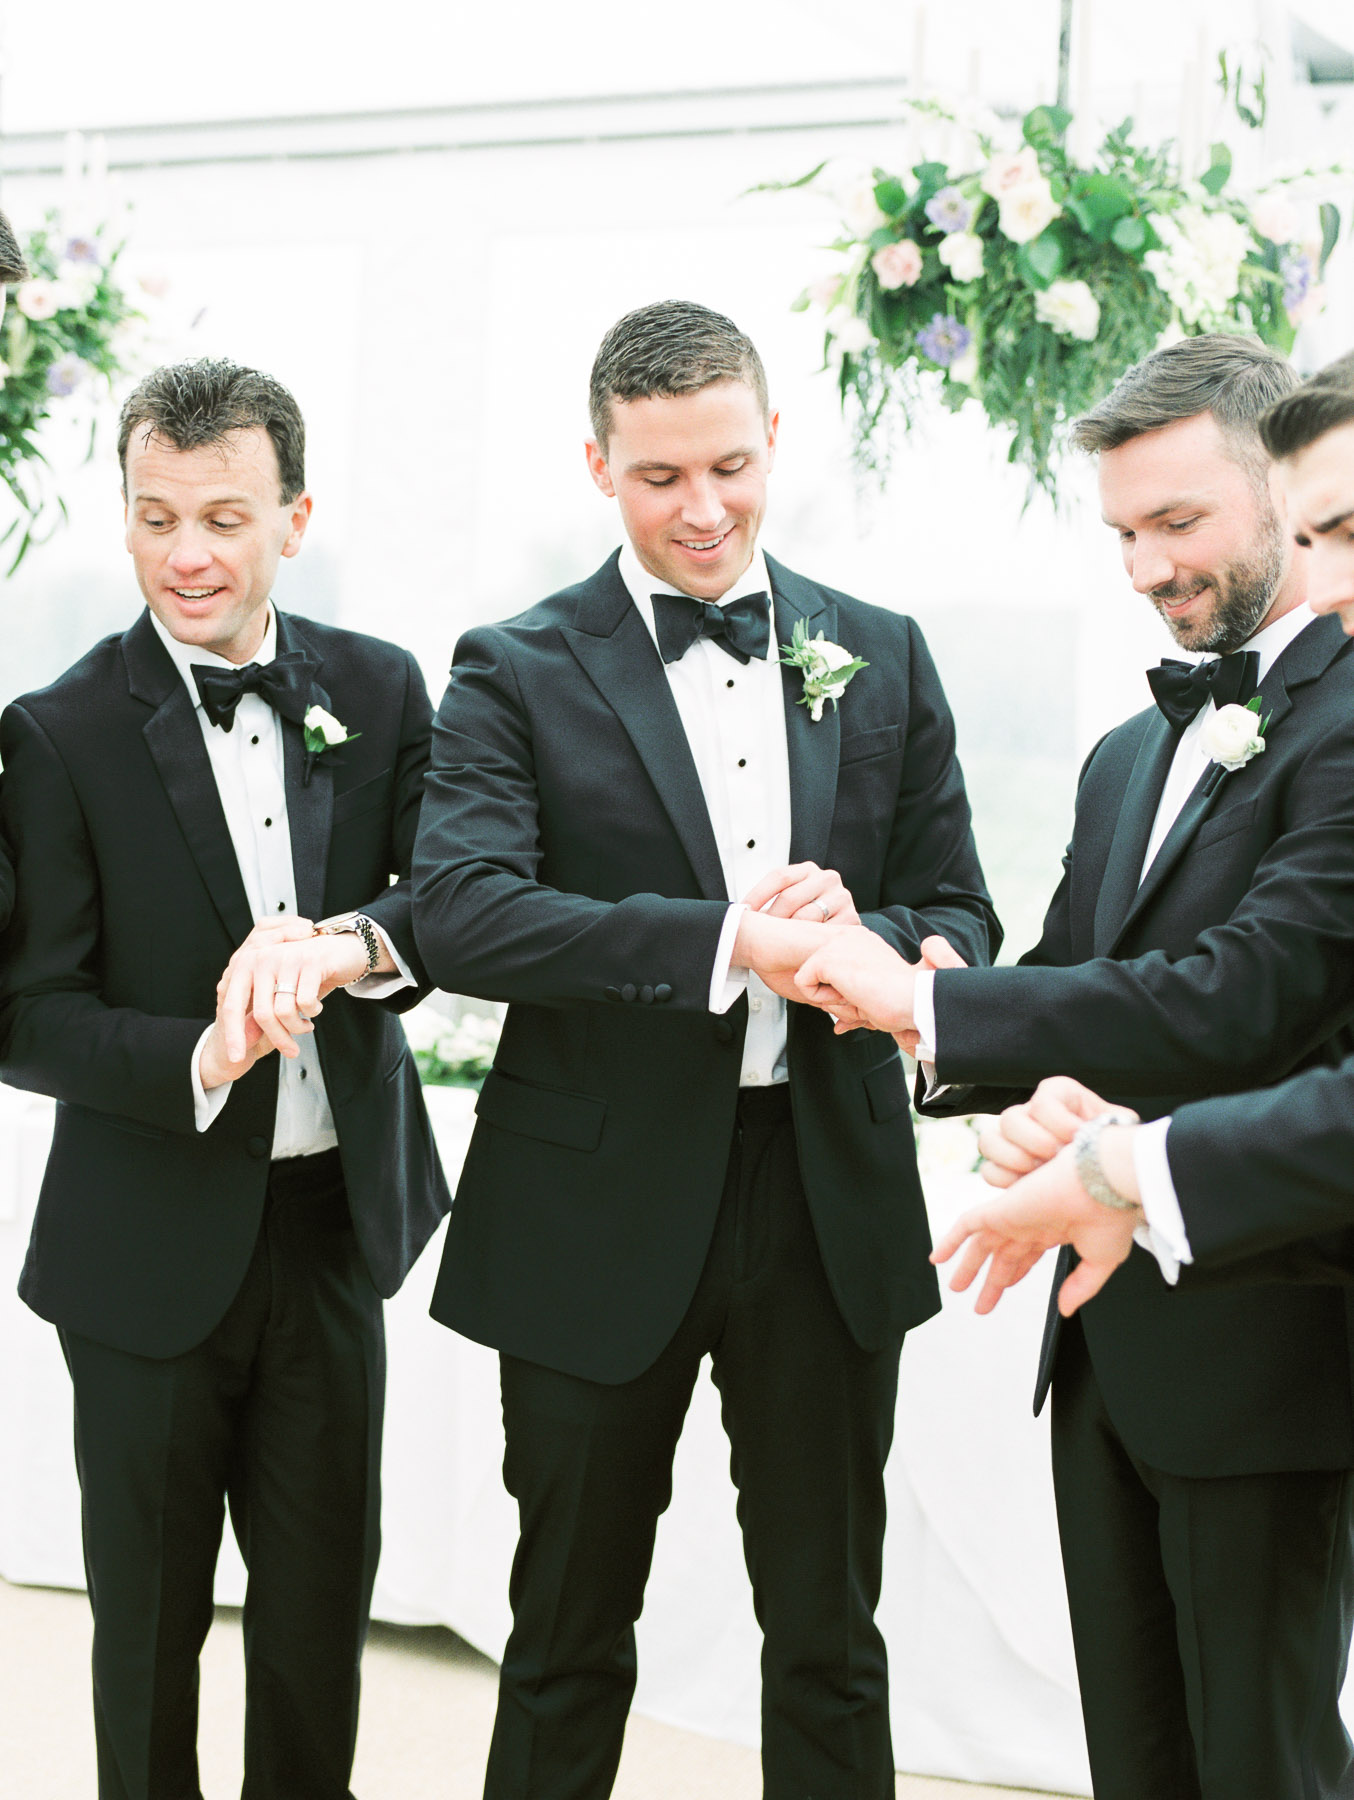 Groomsmen checking time